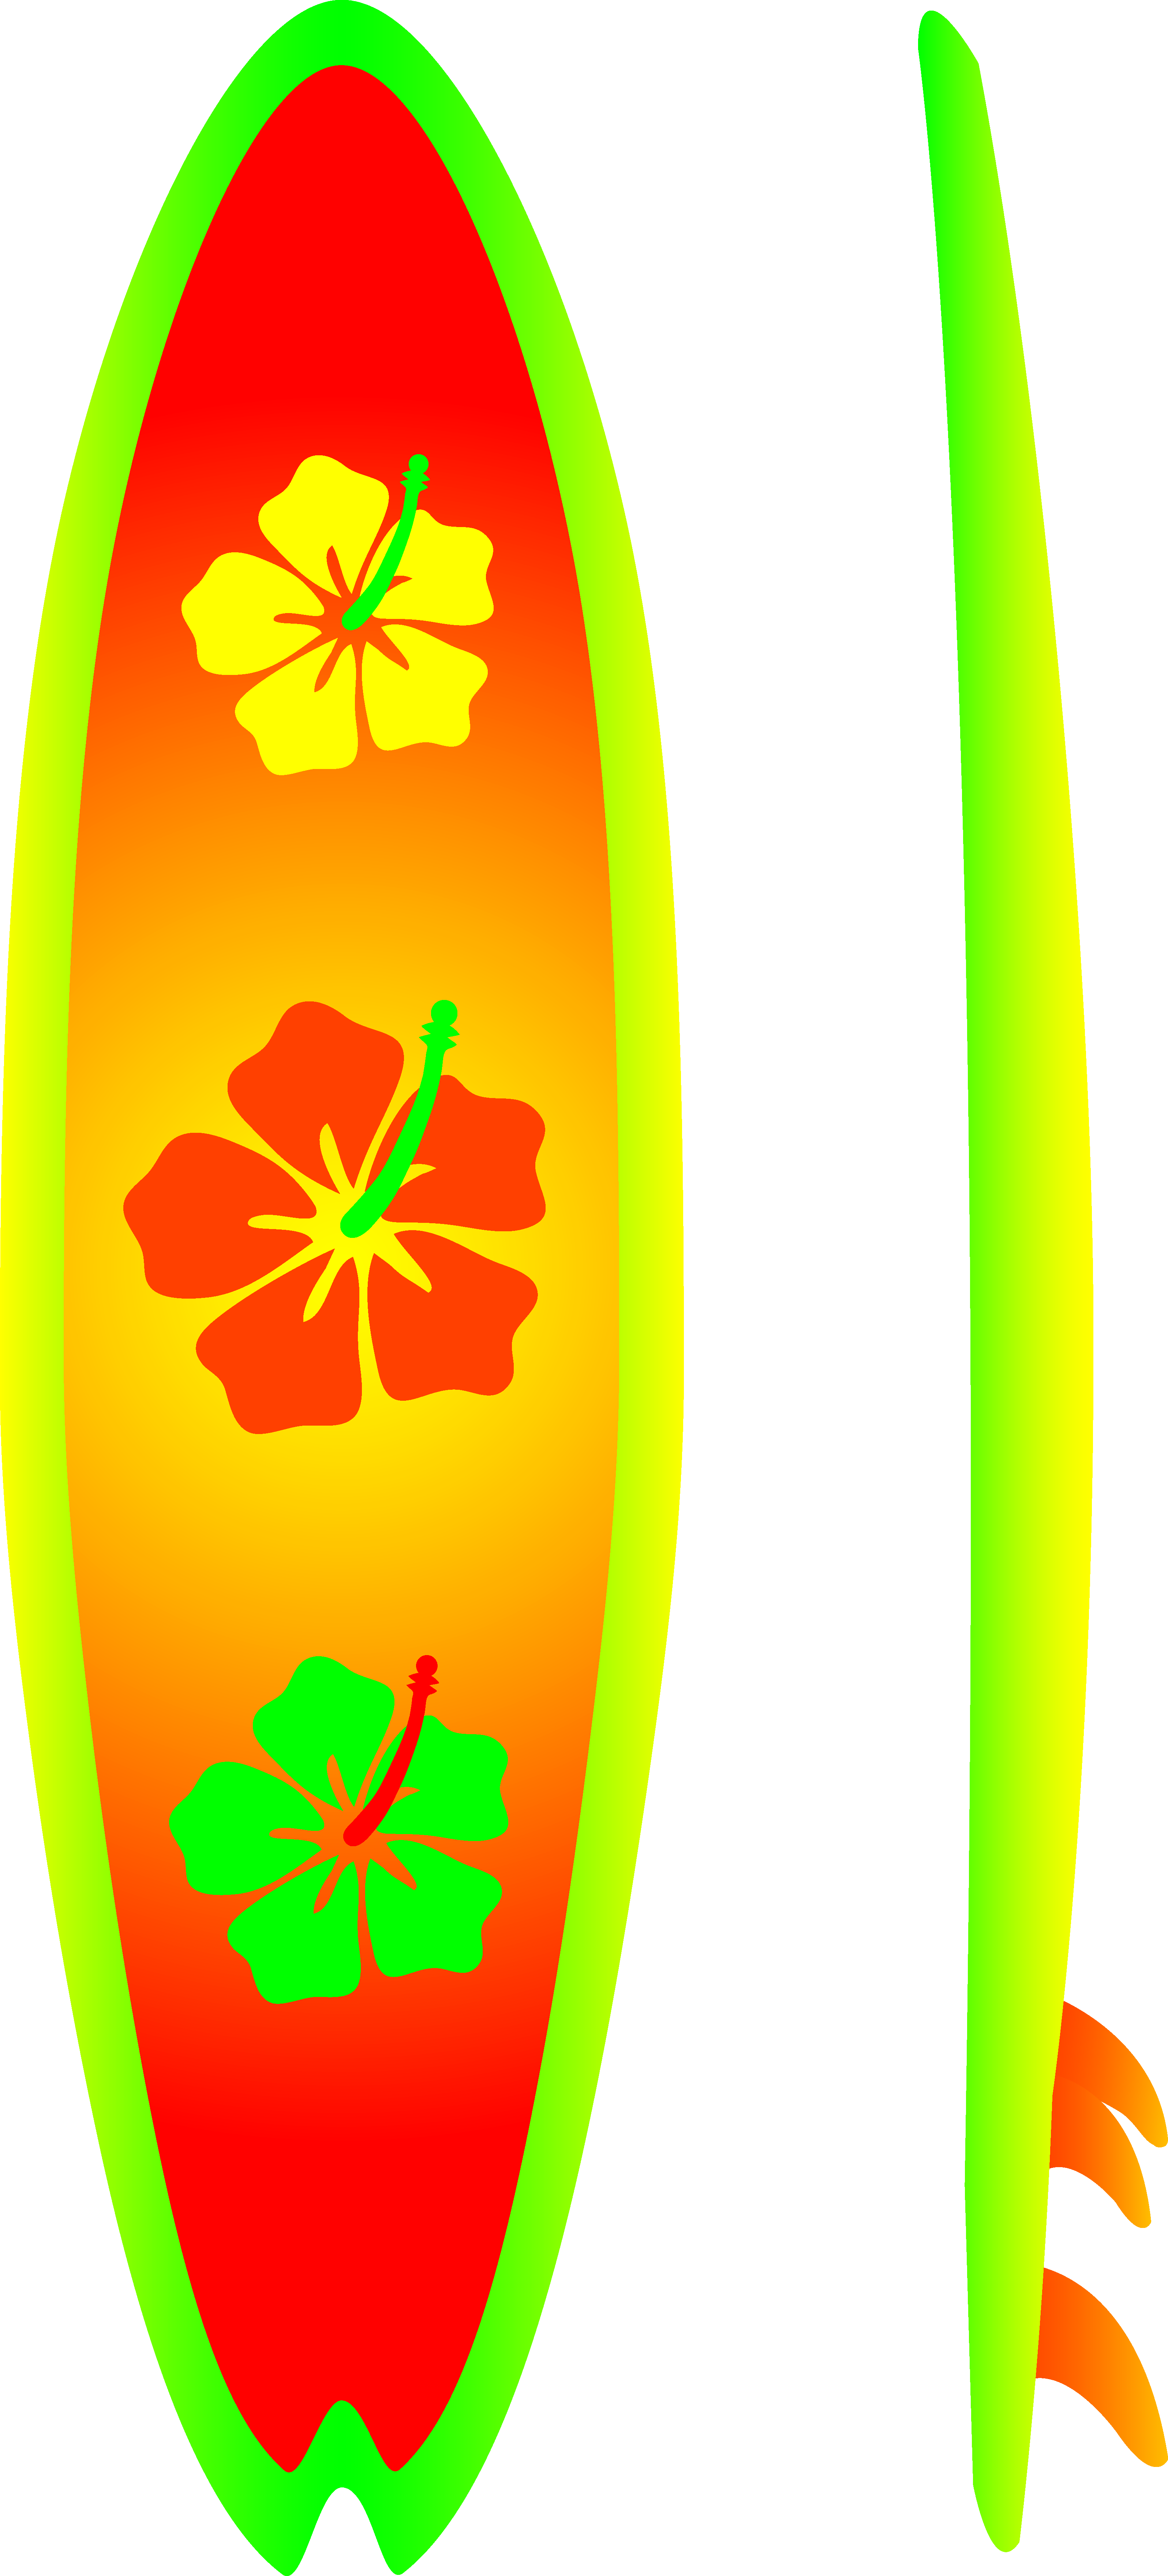 Surfboard clip art free clipart panda free clipart images for Free online drawing